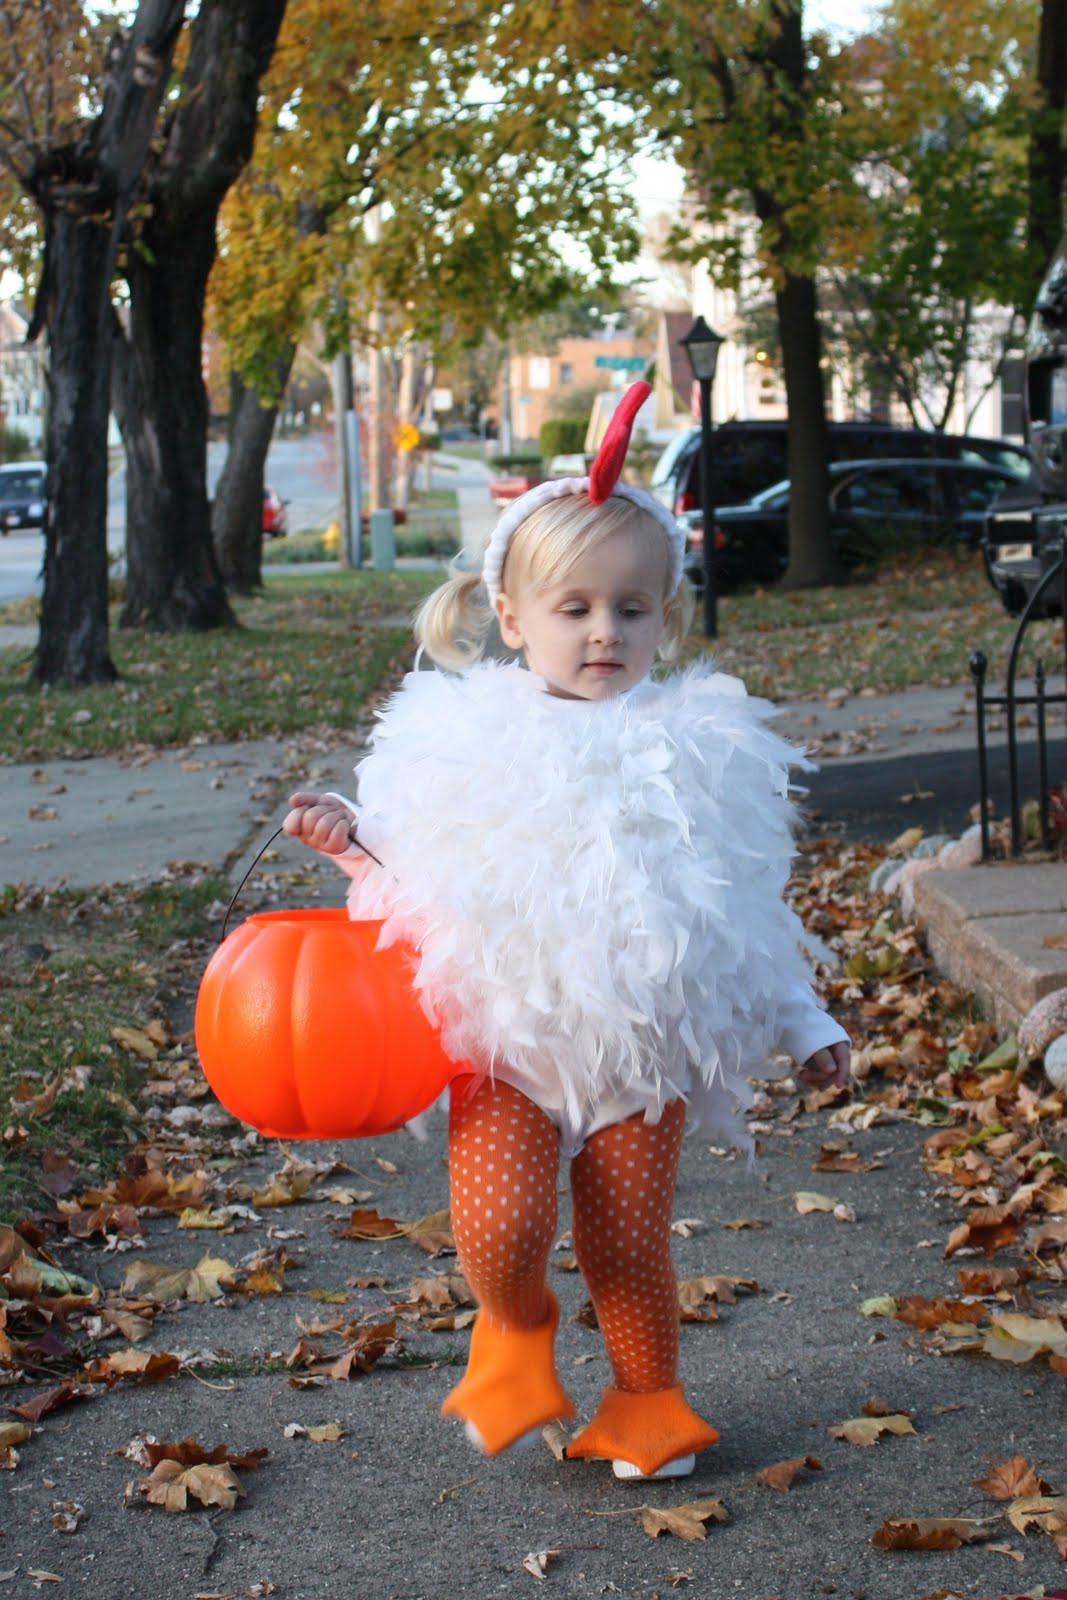 Best ideas about Chicken Costume DIY . Save or Pin While Wearing Heels Reformed Halloween Grinch Now.